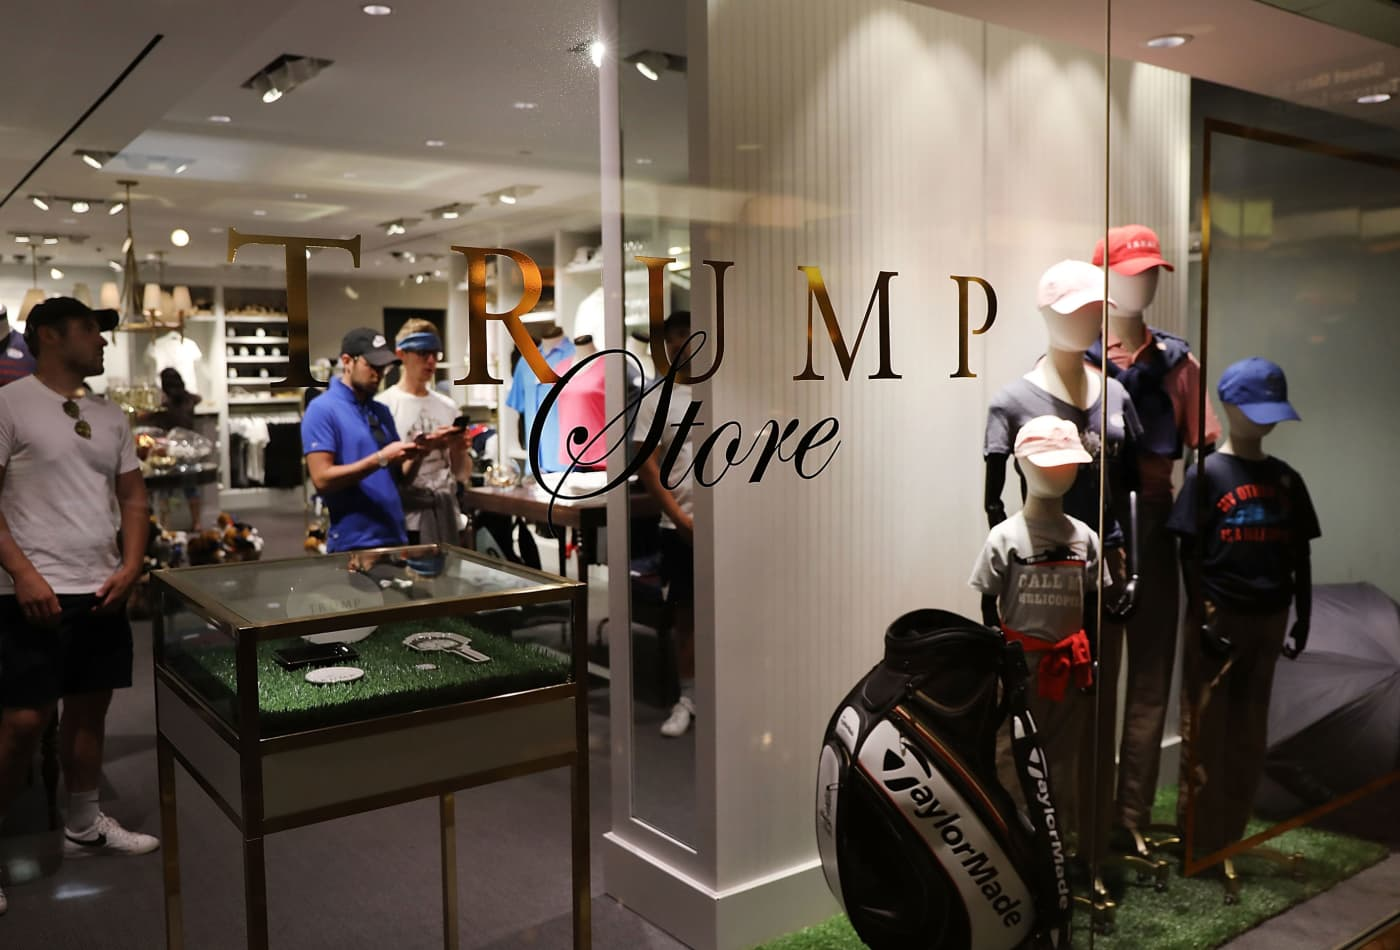 Buy American? Trump makes over $1 million from store that sells products with foreign, unknown origins